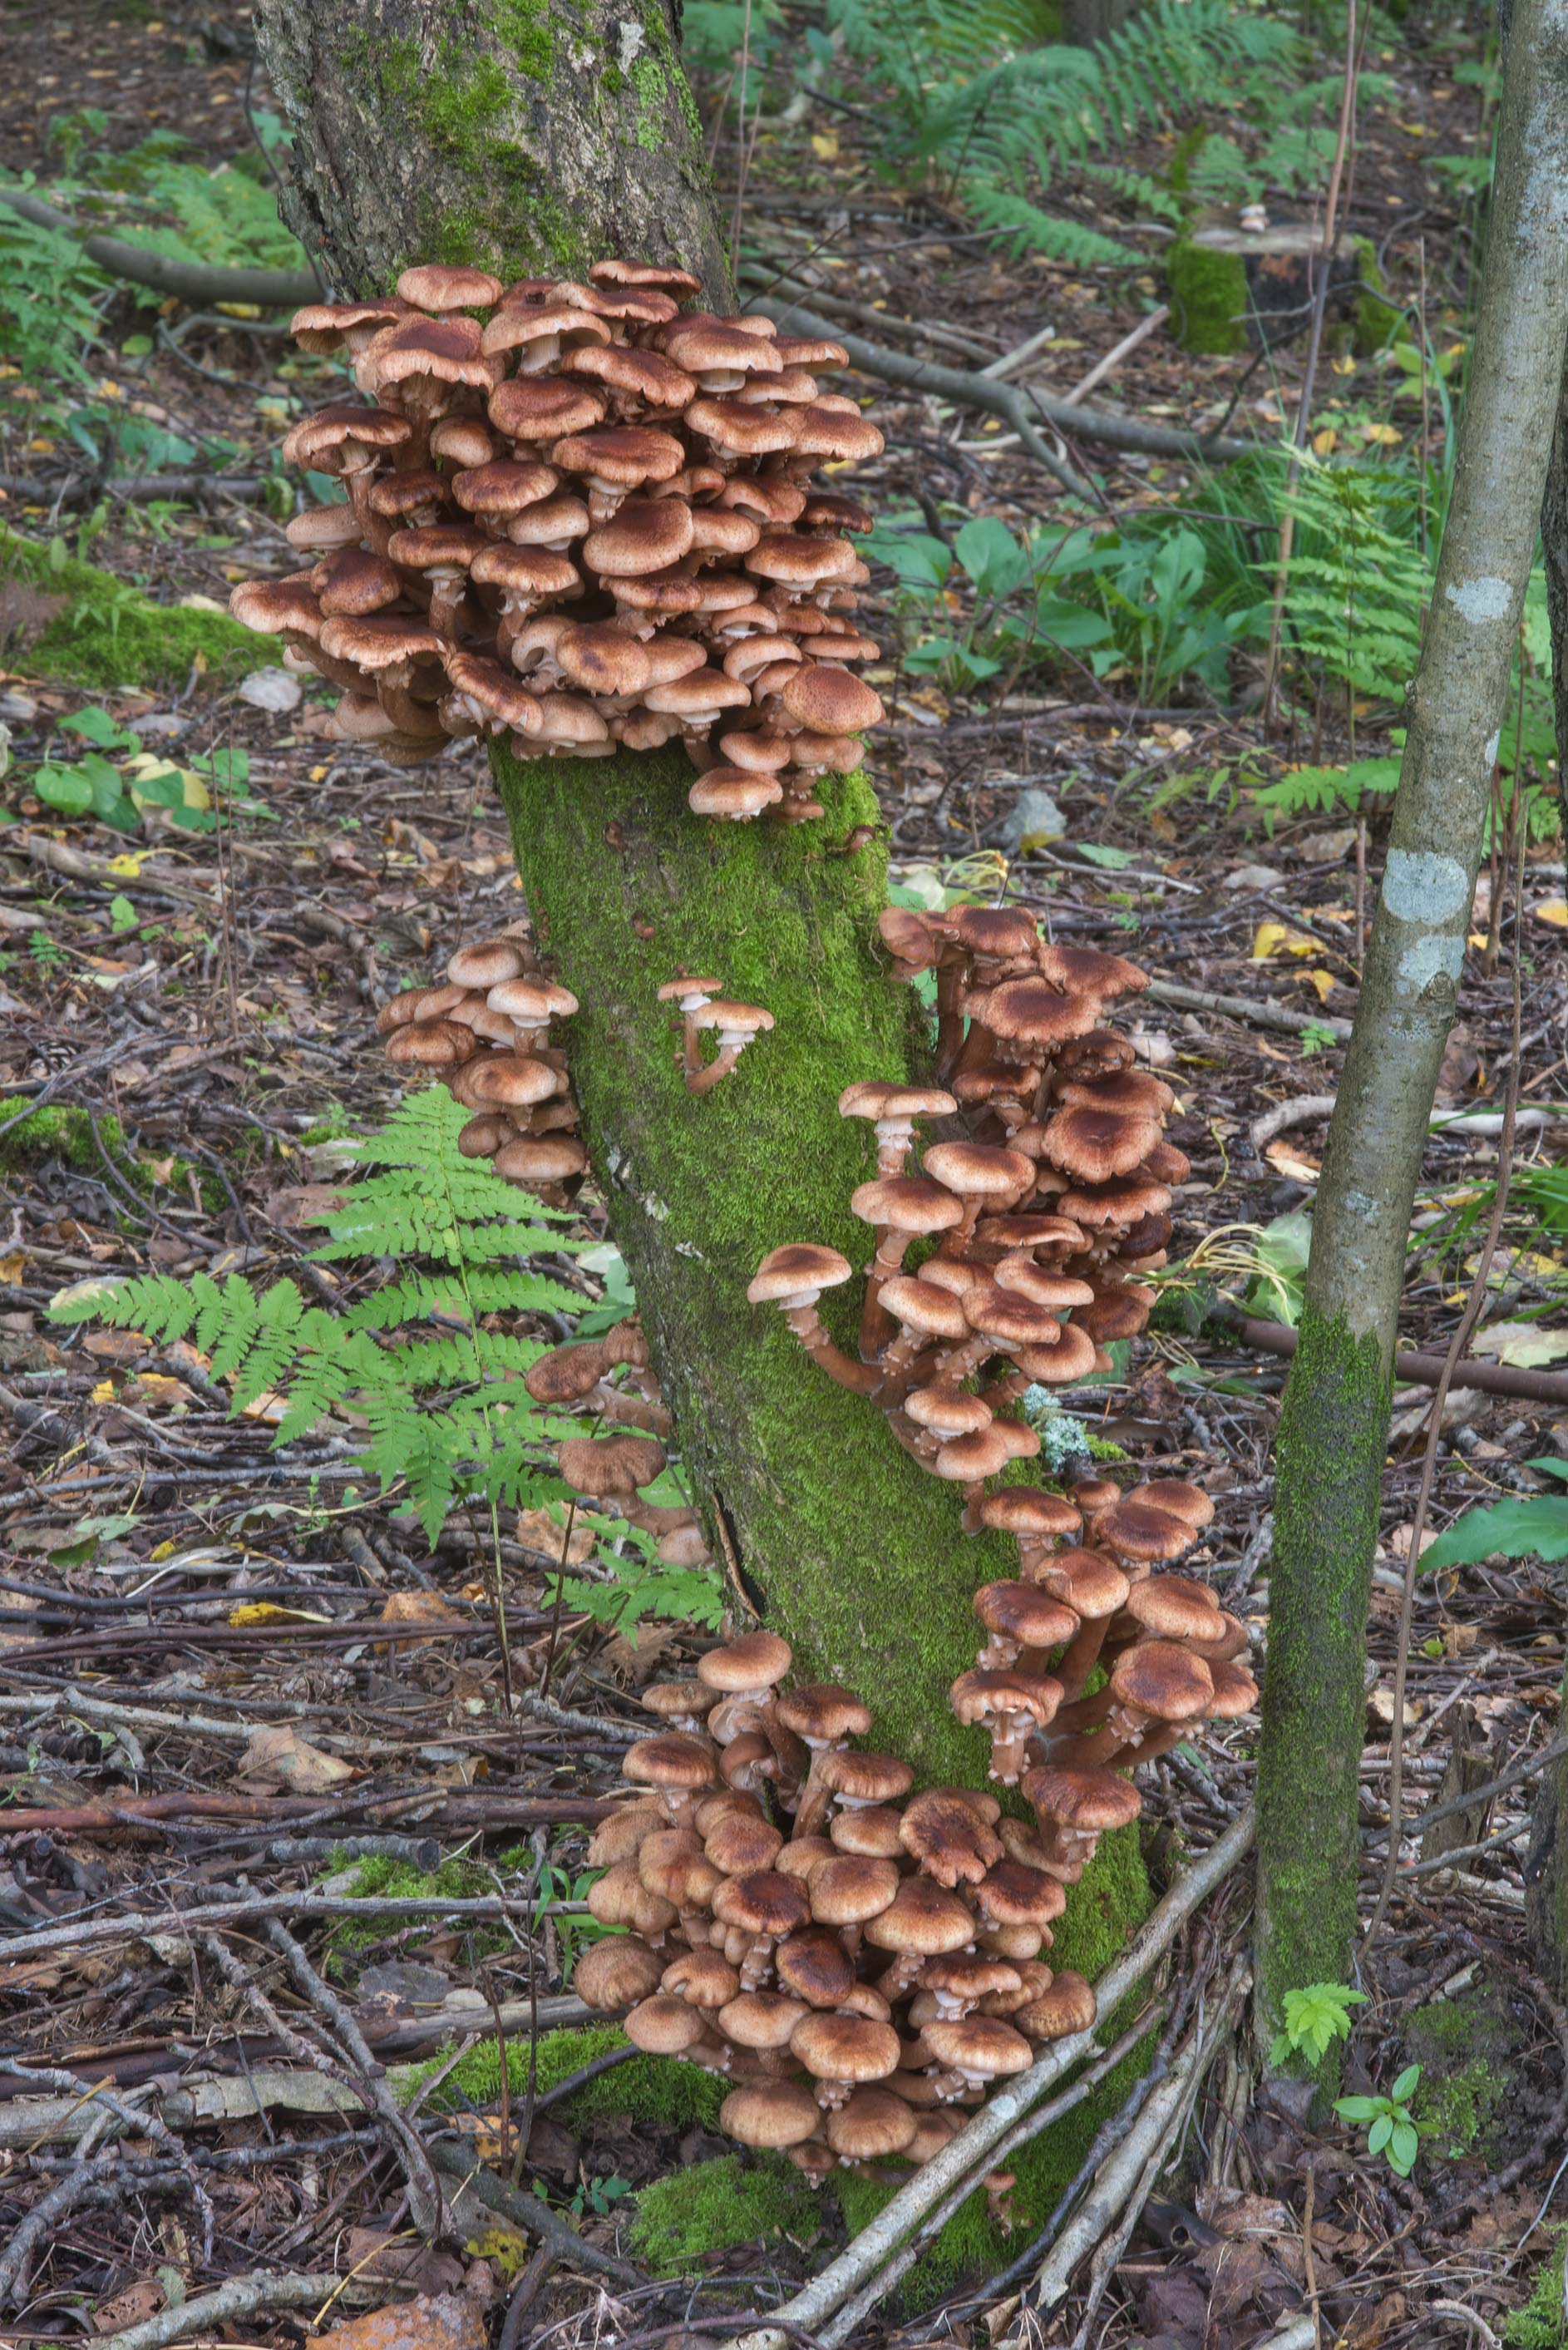 Masses of northern honey mushrooms (Armillaria...north-west from St.Petersburg. Russia